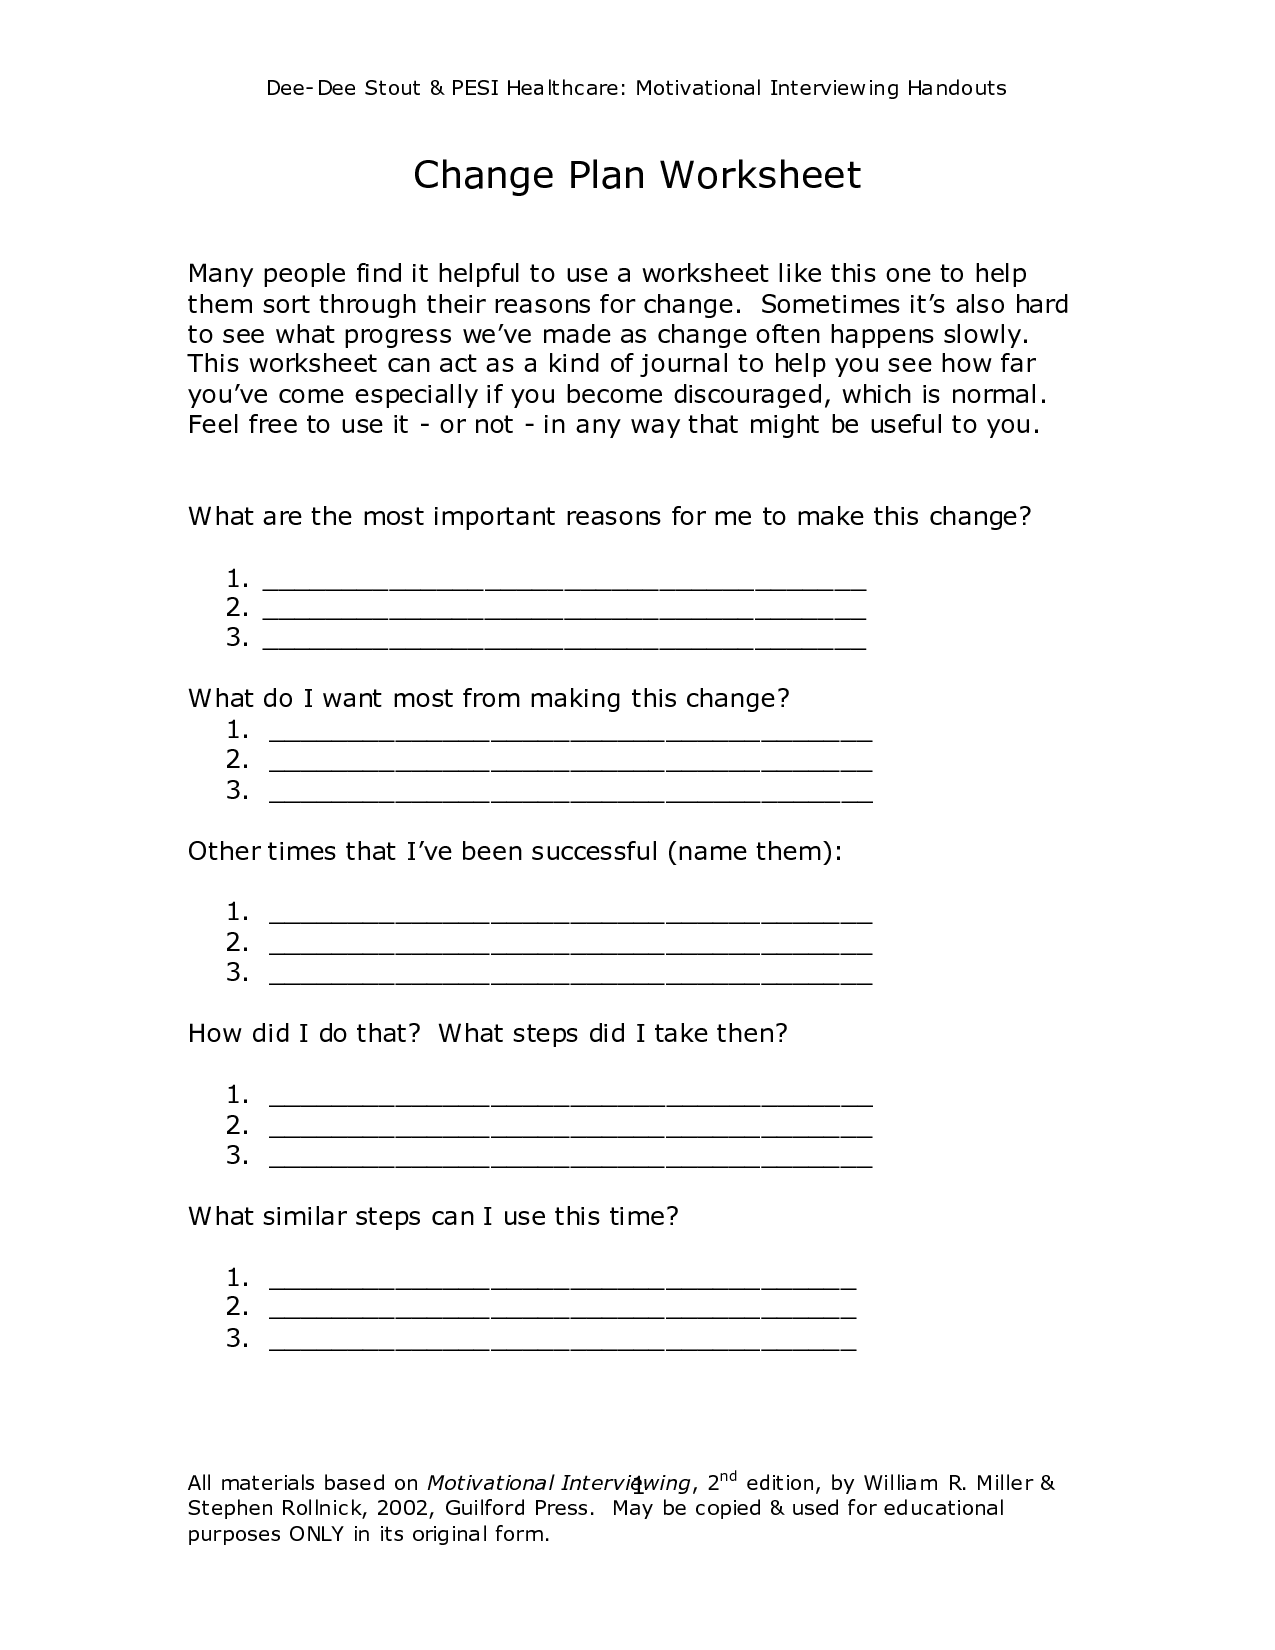 worksheeto postpic 2012 02 motivationalinterviewing – Stages of Change Worksheet